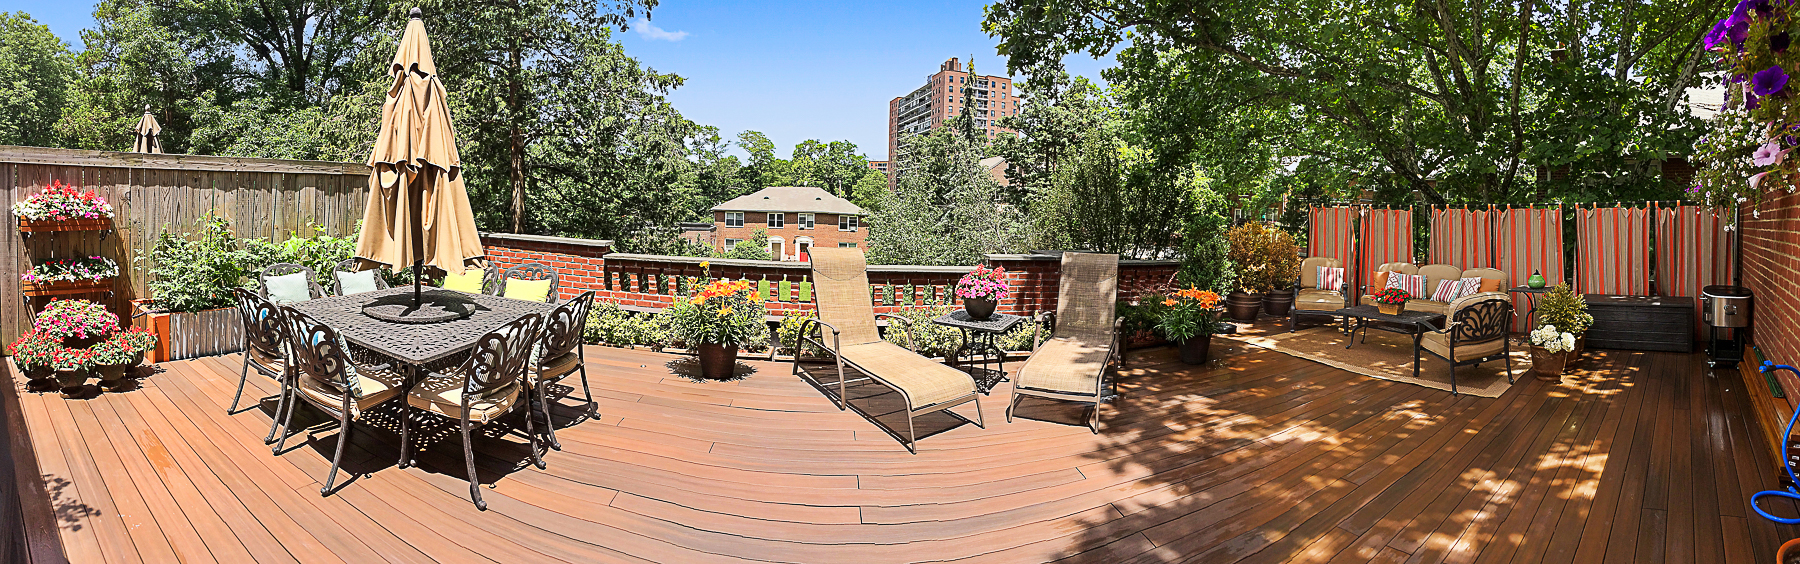 コープ のために 売買 アット MINT 2 BR CO-OP WITH HUGE TERRACE AND PARKING 4601 Henry Hudson Parkway B2 Riverdale, ニューヨーク, 10471 アメリカ合衆国